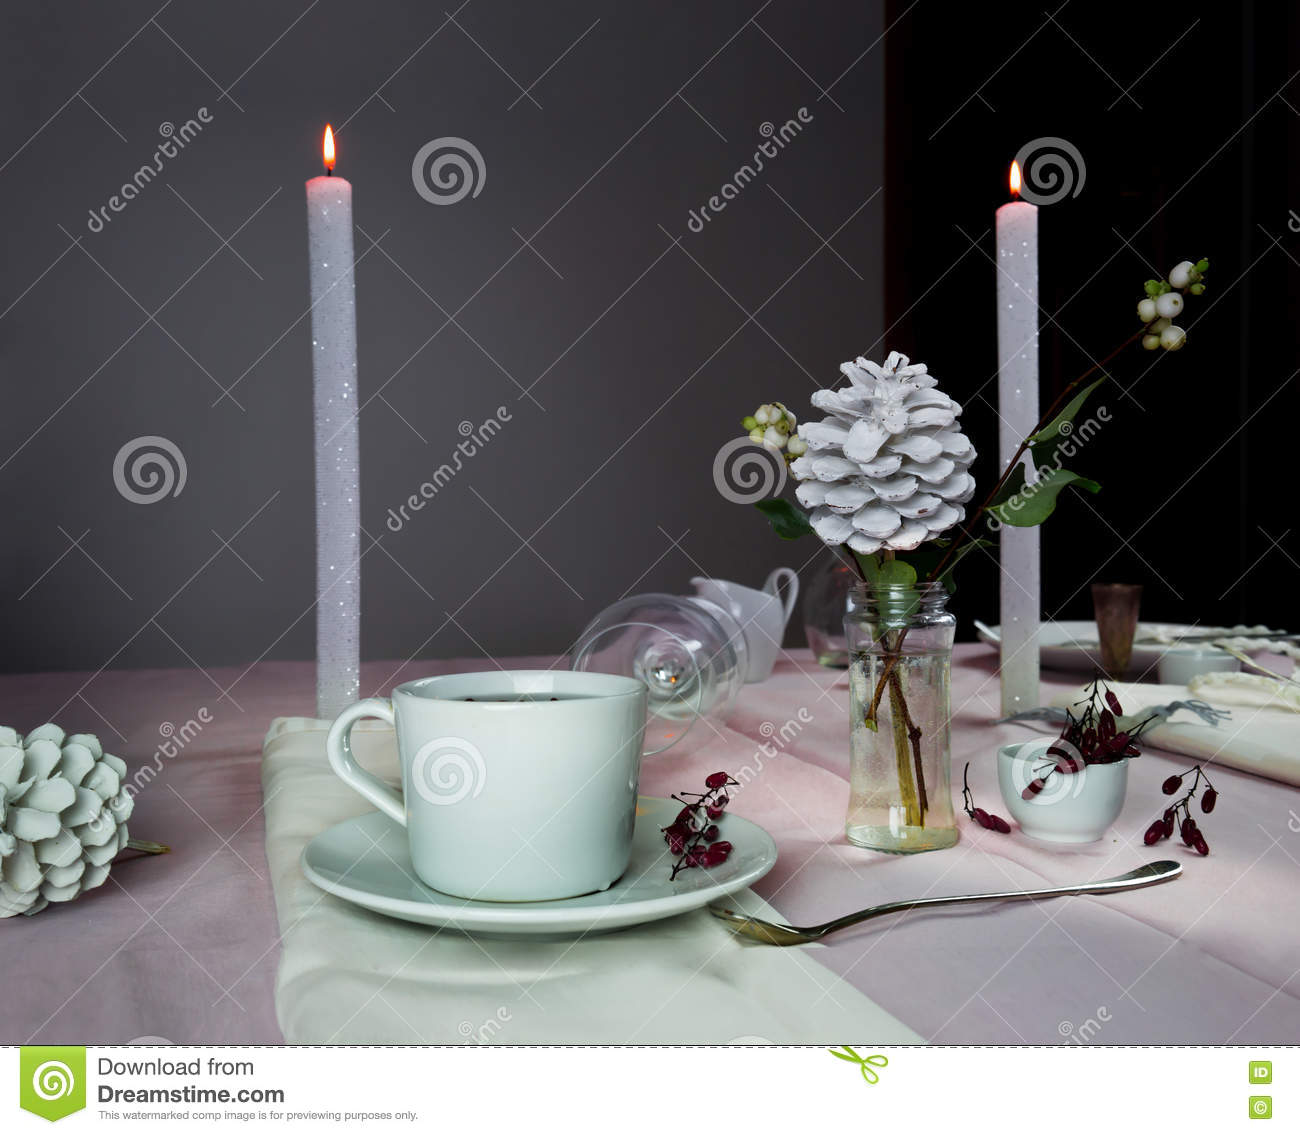 Elegant dinner table setting - Elegant Table Setting Christmas Romantic Dinner A Table With A Tablecloth Cutlery Candles Flowers Buds